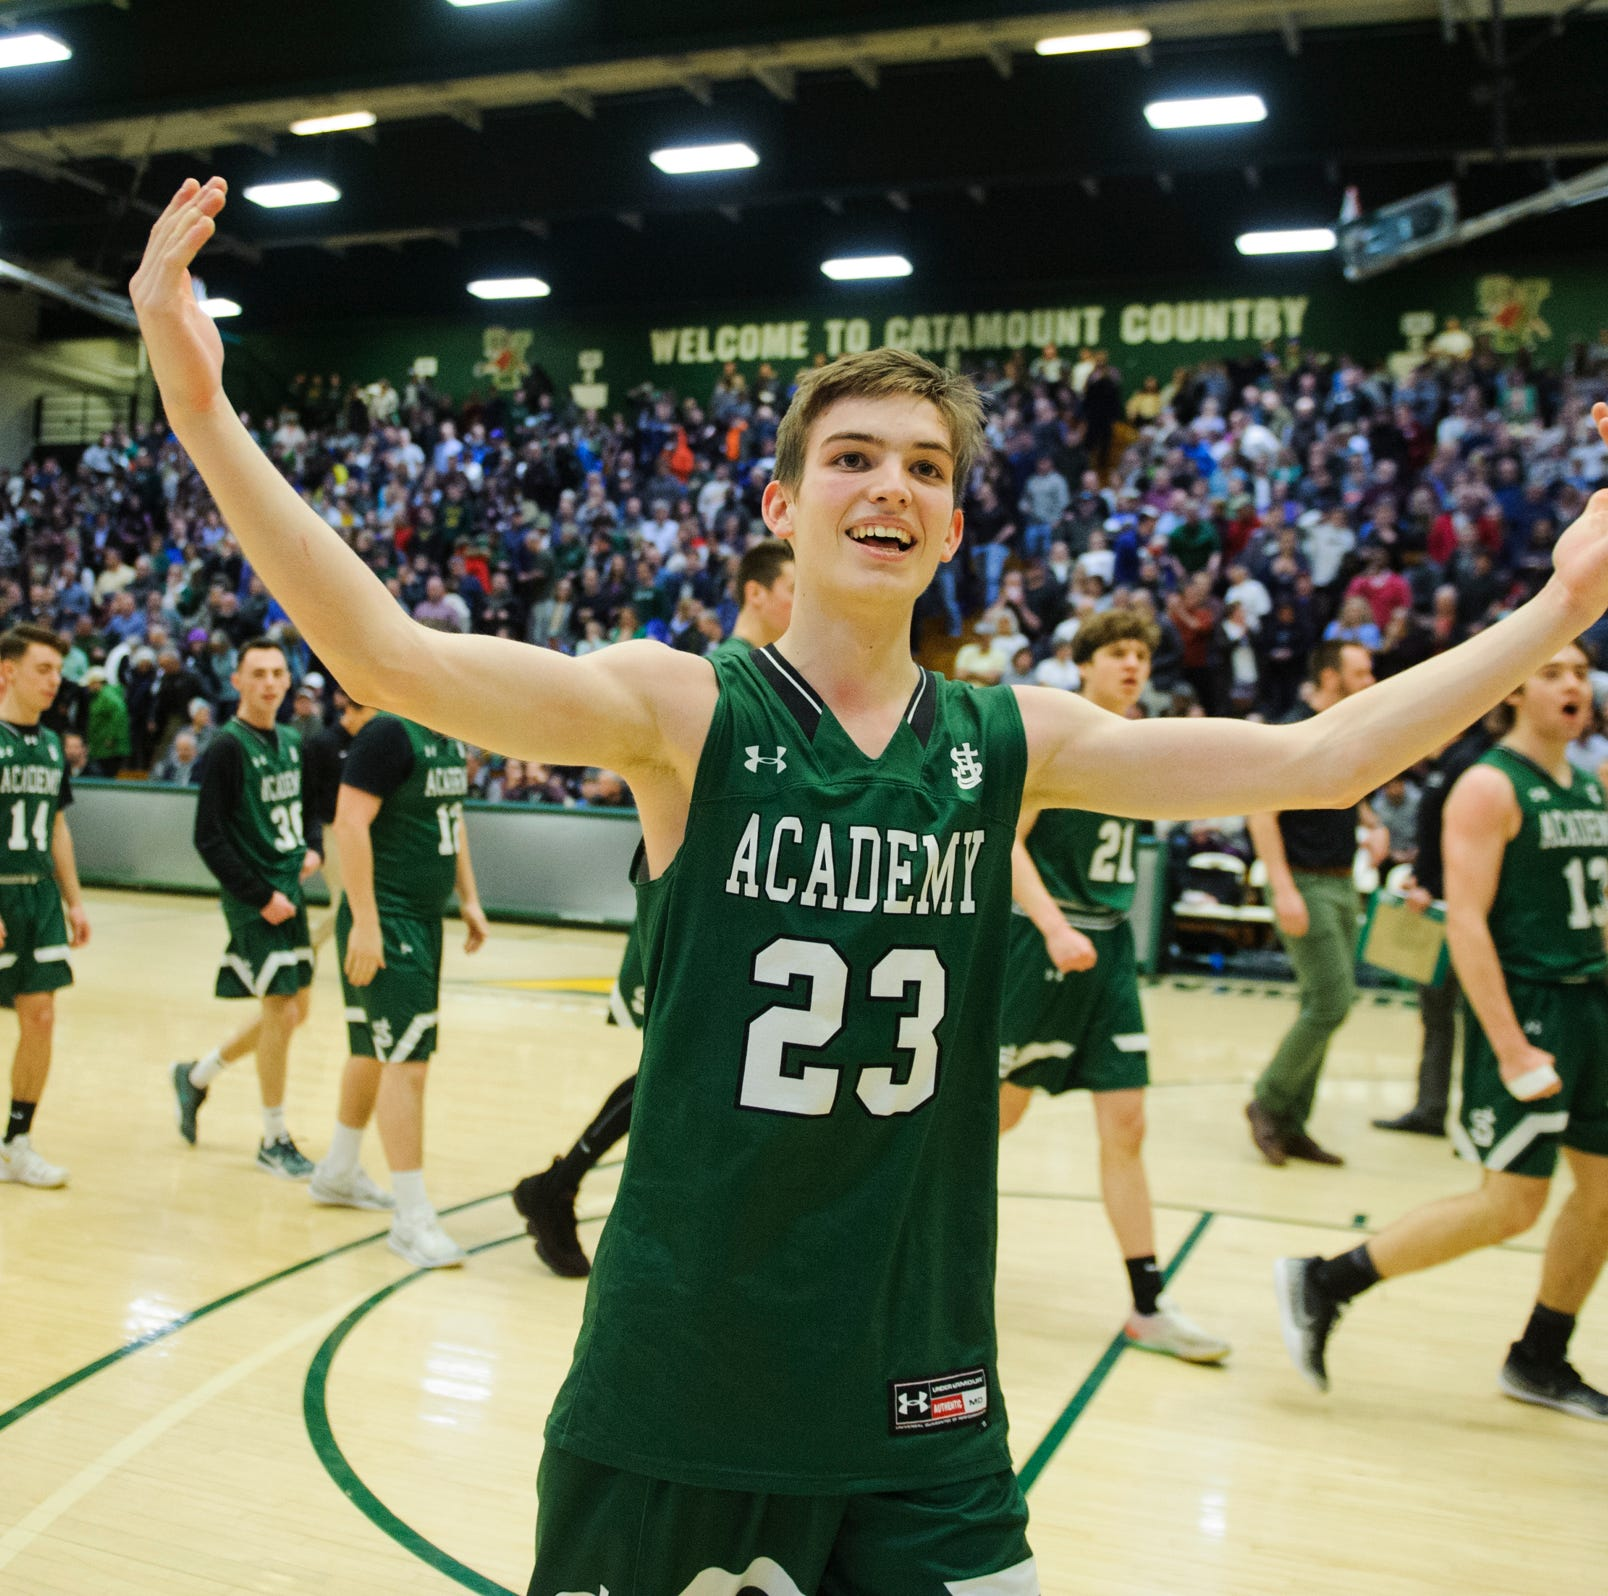 Live updates: Rutland vs. St. Johnsbury for the D-I boys hoops title